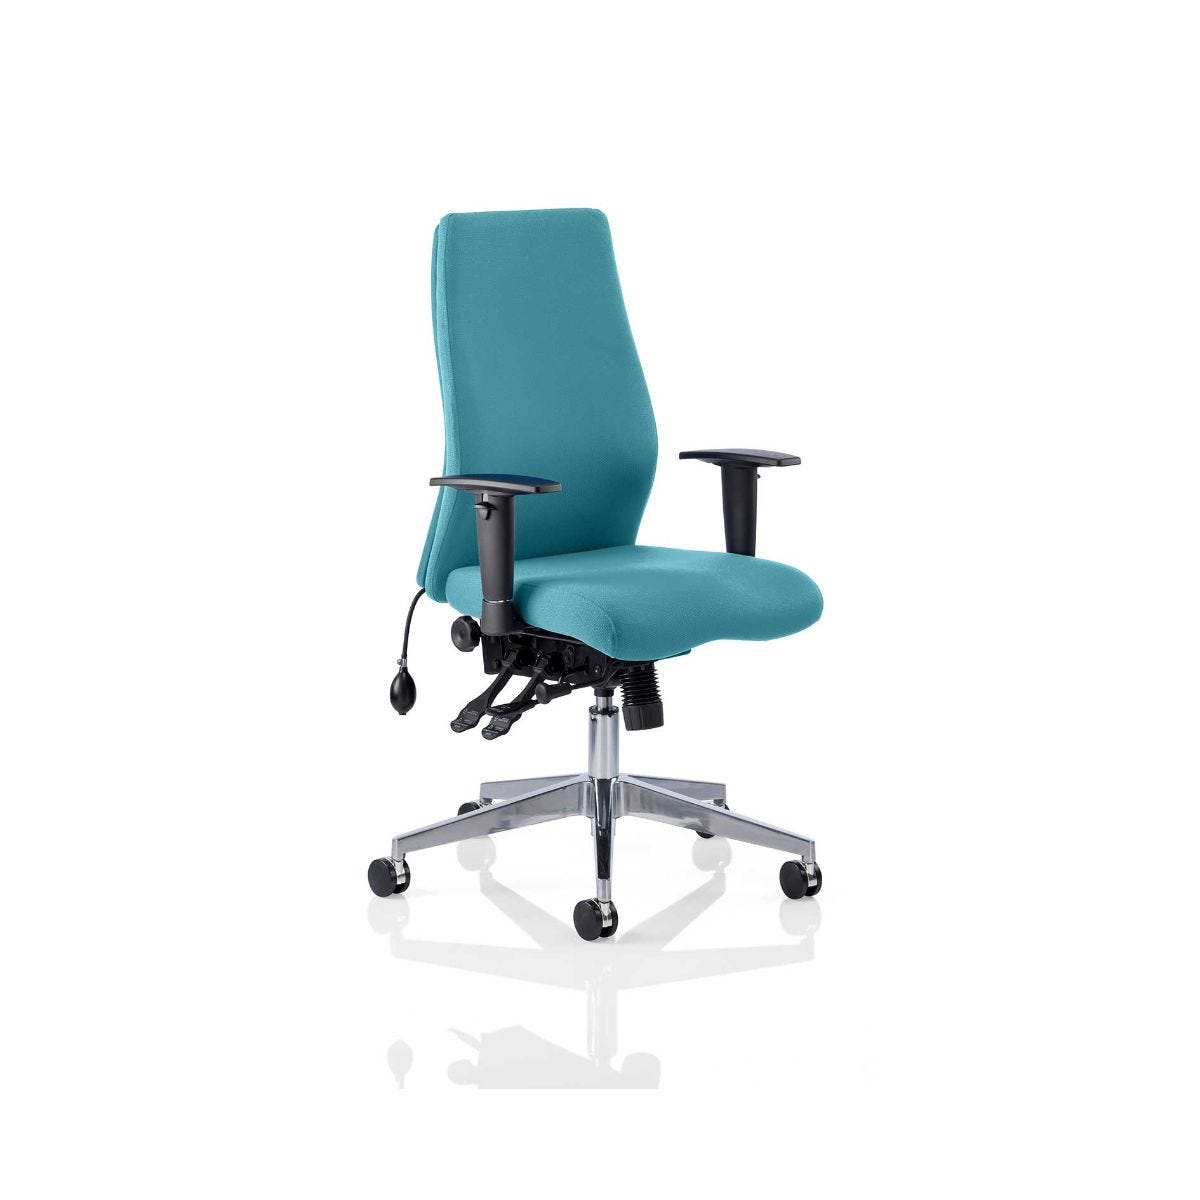 Onyx Bespoke Office Chair, Maringa